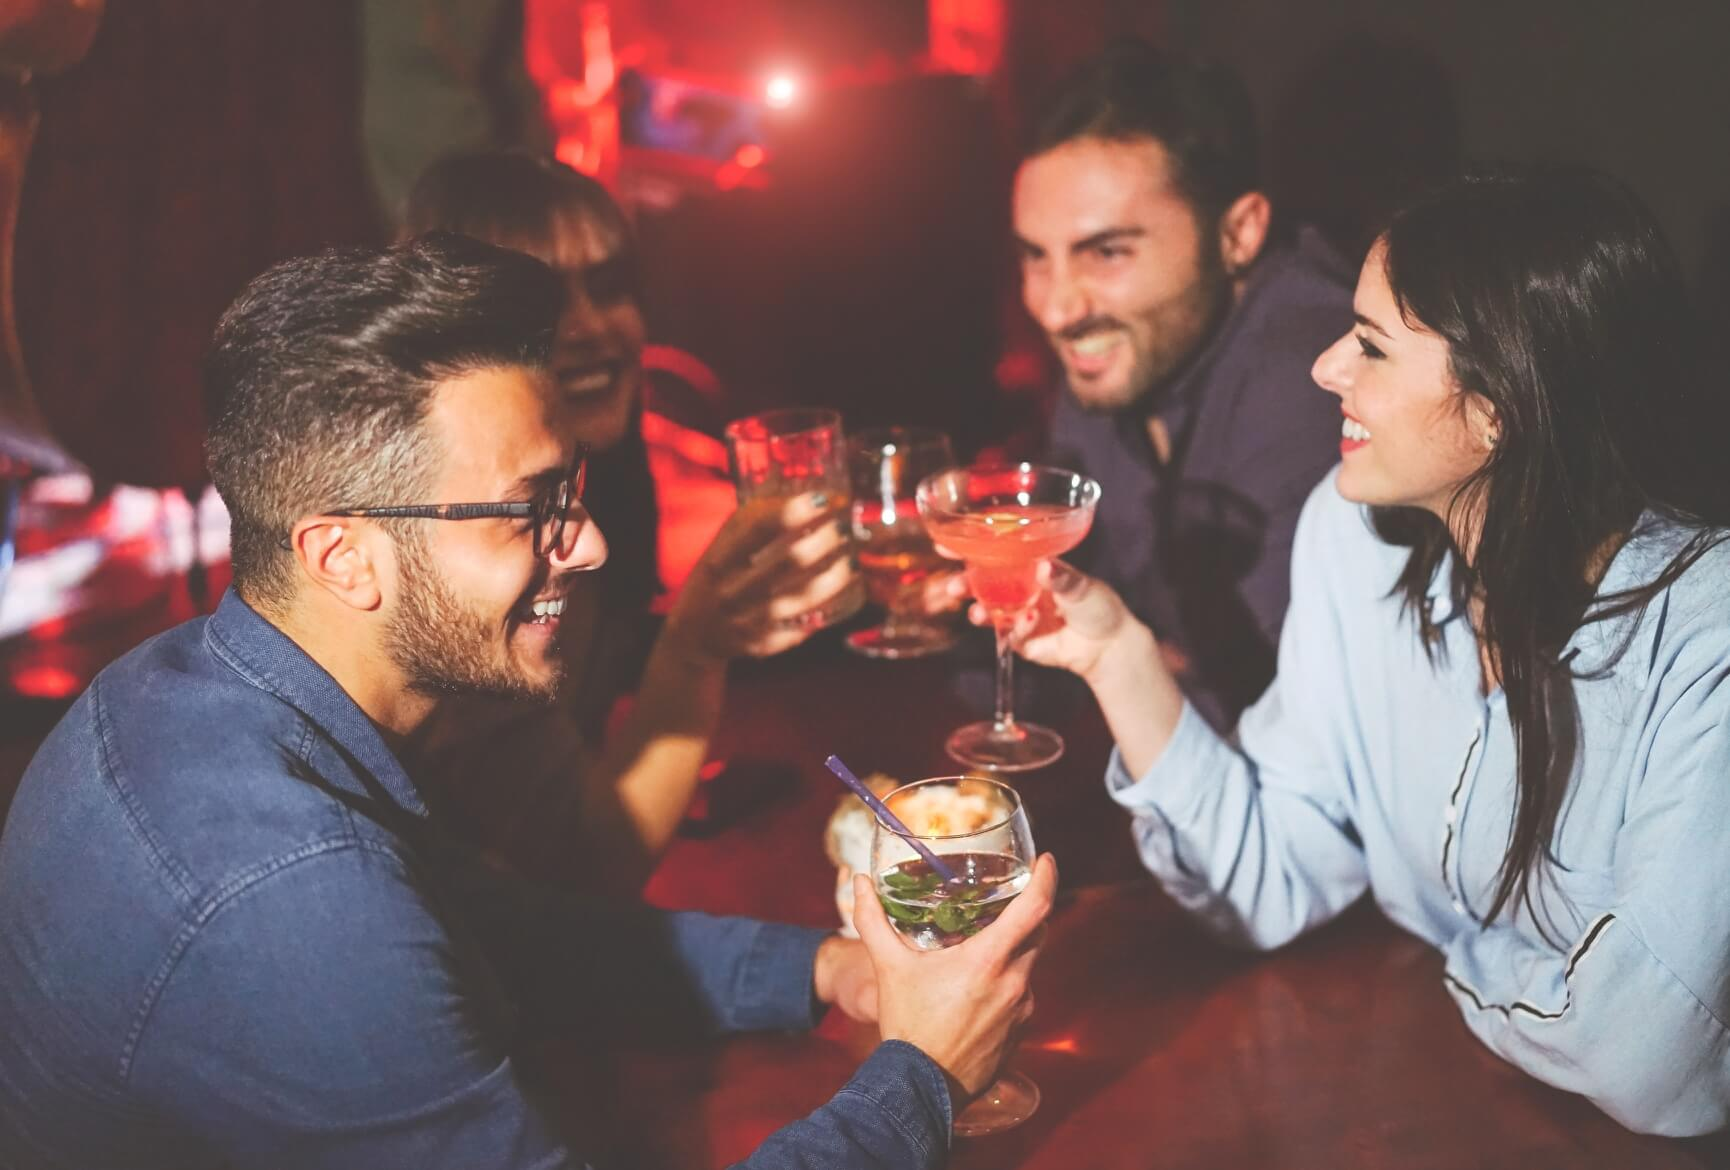 Photo with people enjoying their drinks in a club